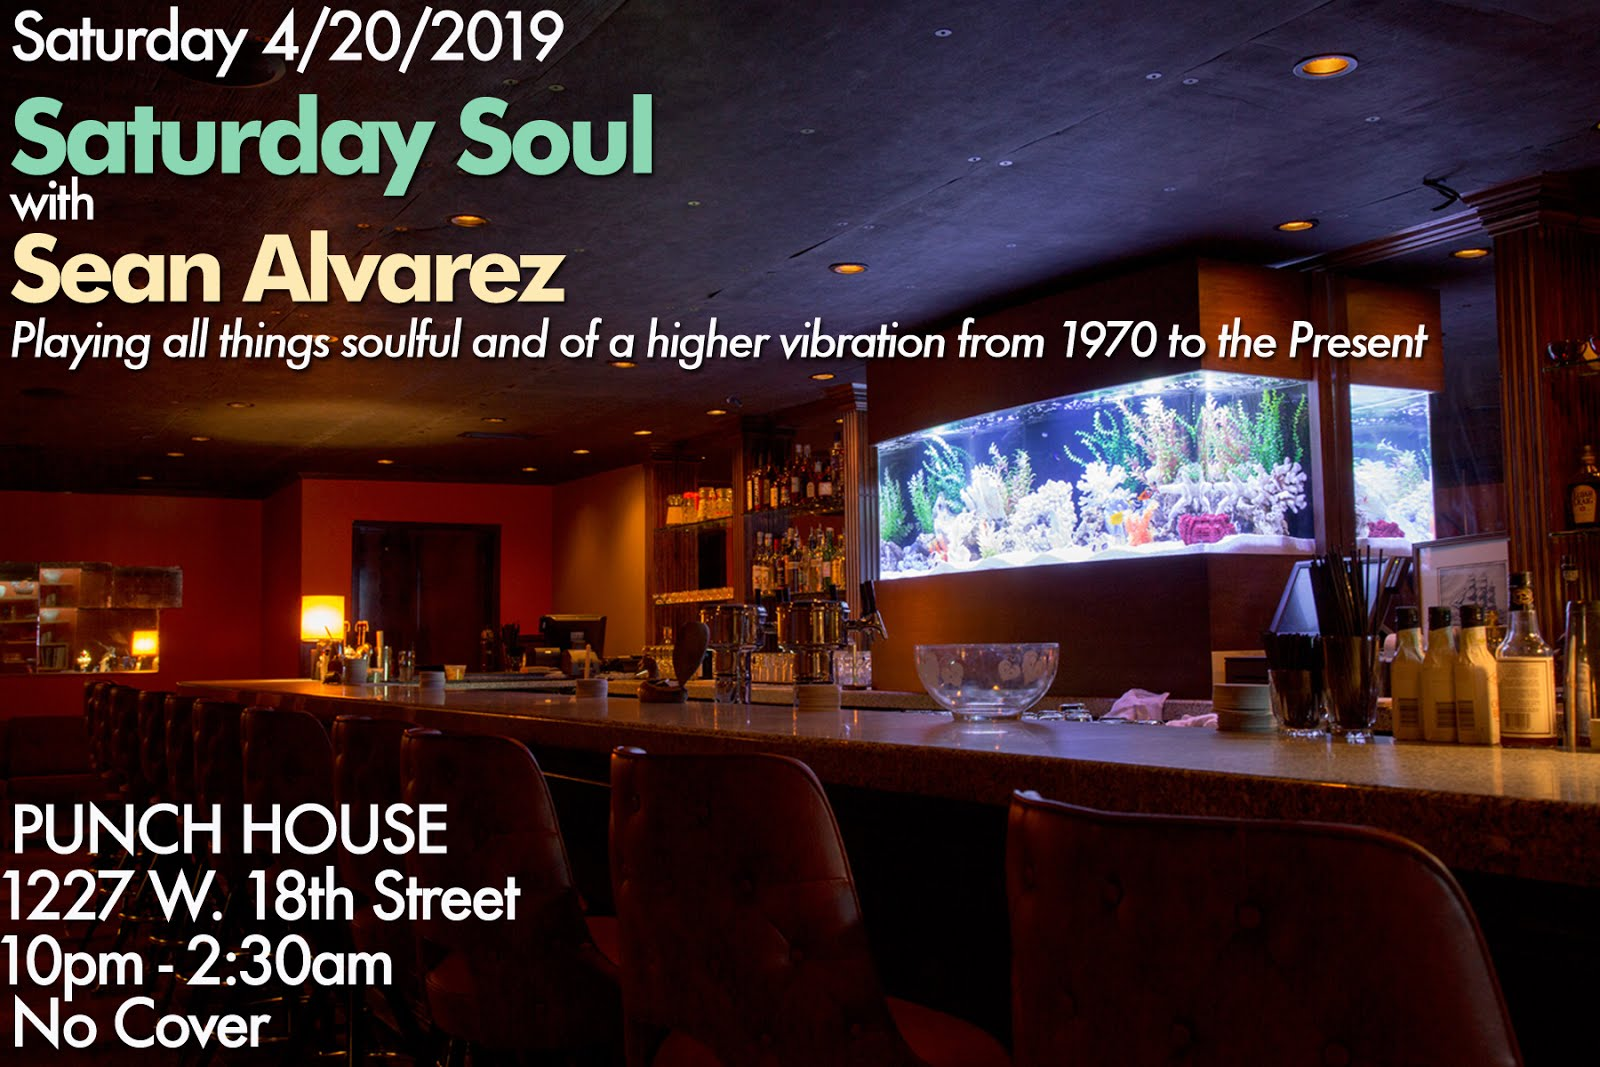 Saturday Night 4/20: Saturday Soul @ Punch House